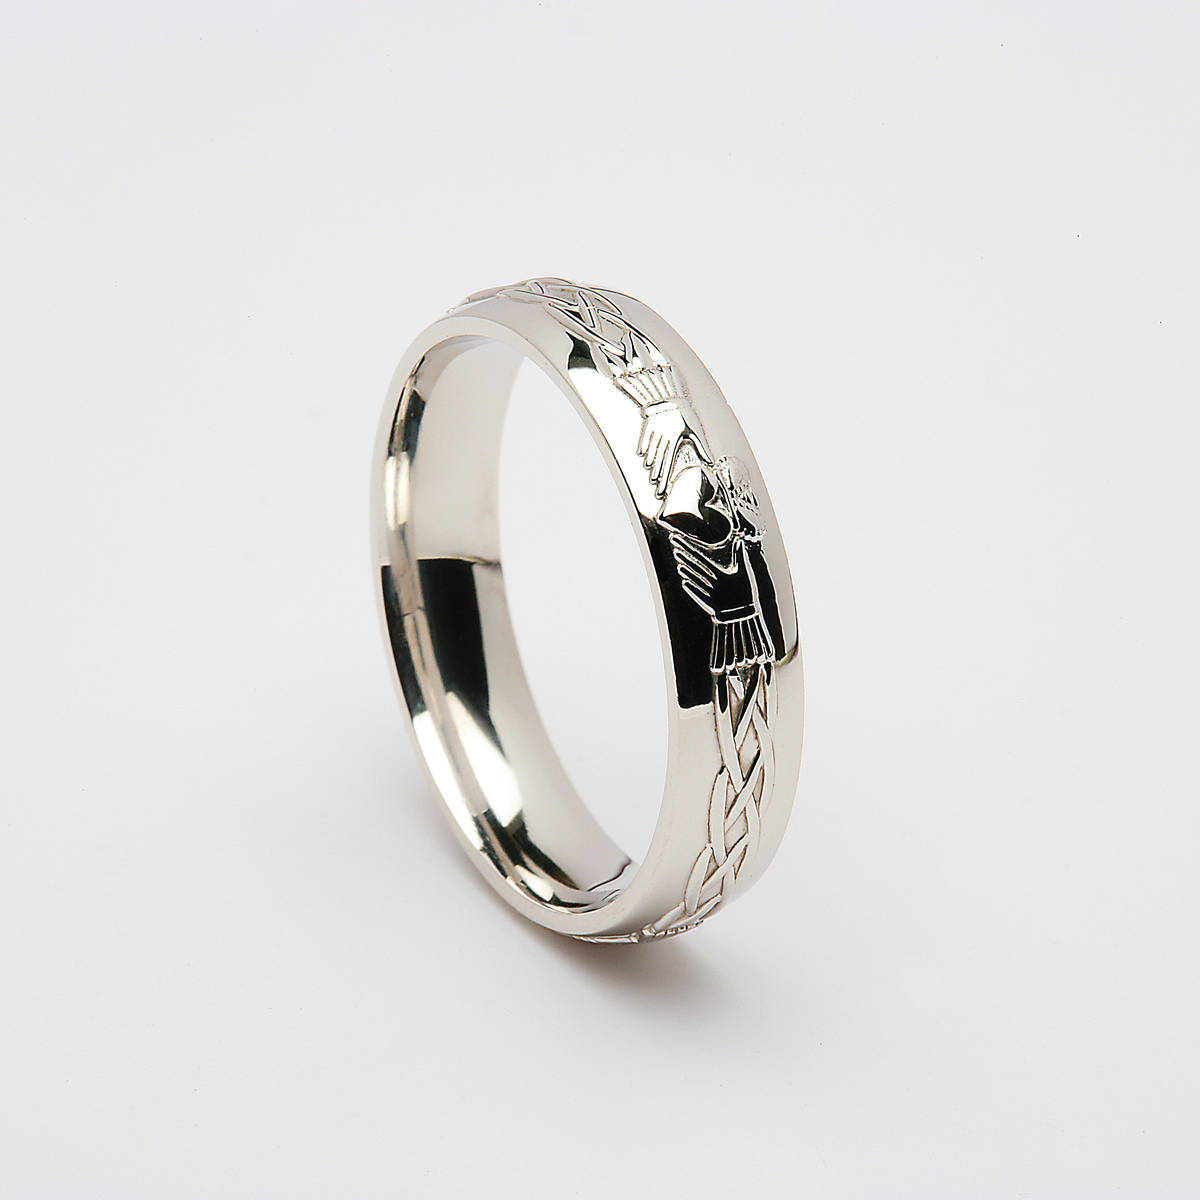 18 carat white gold Claddagh wedding band